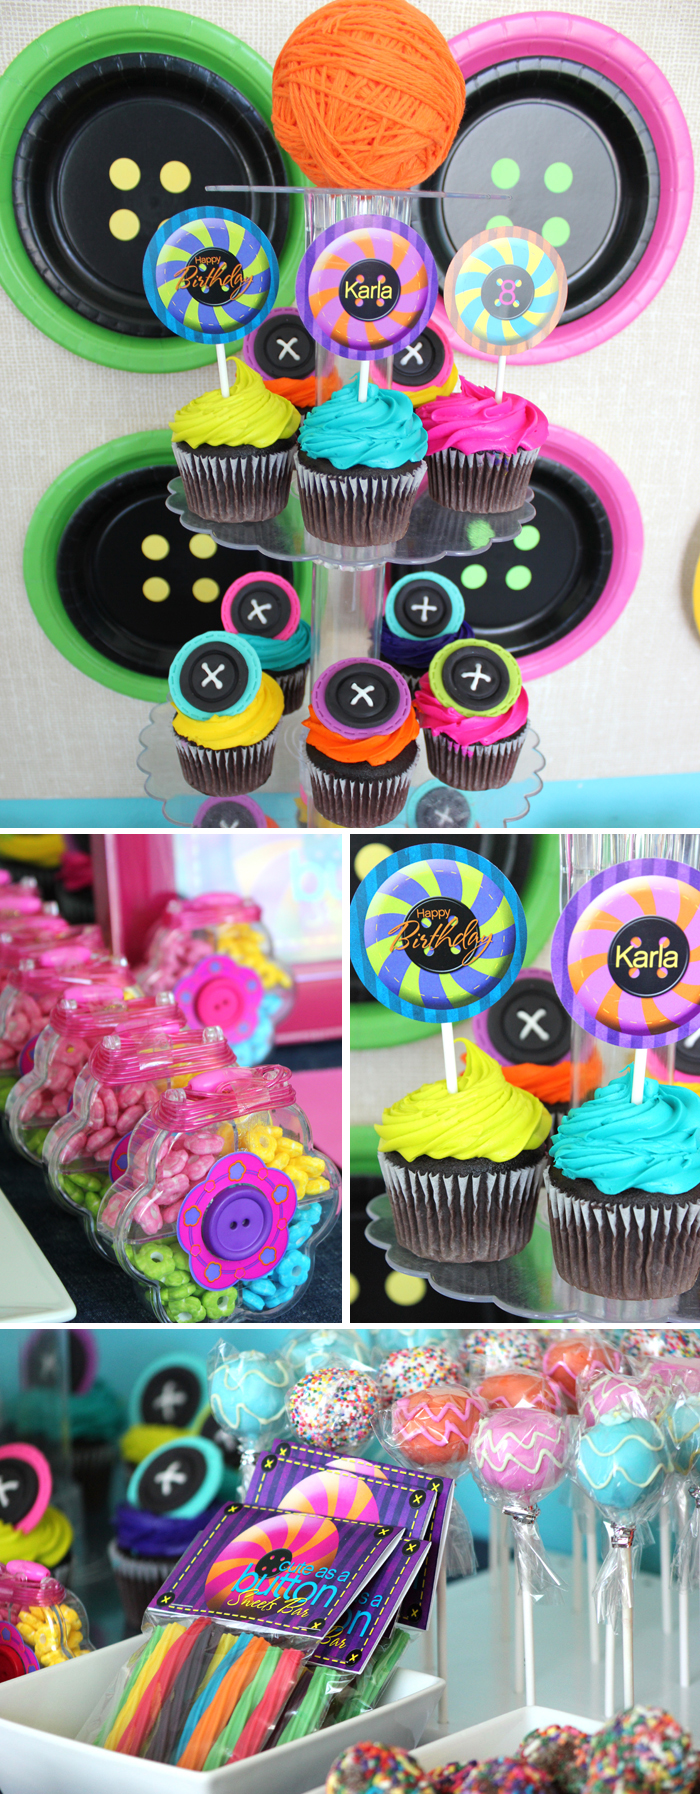 Lalaloopsy party printables and cupcakes and sweets tables and favors